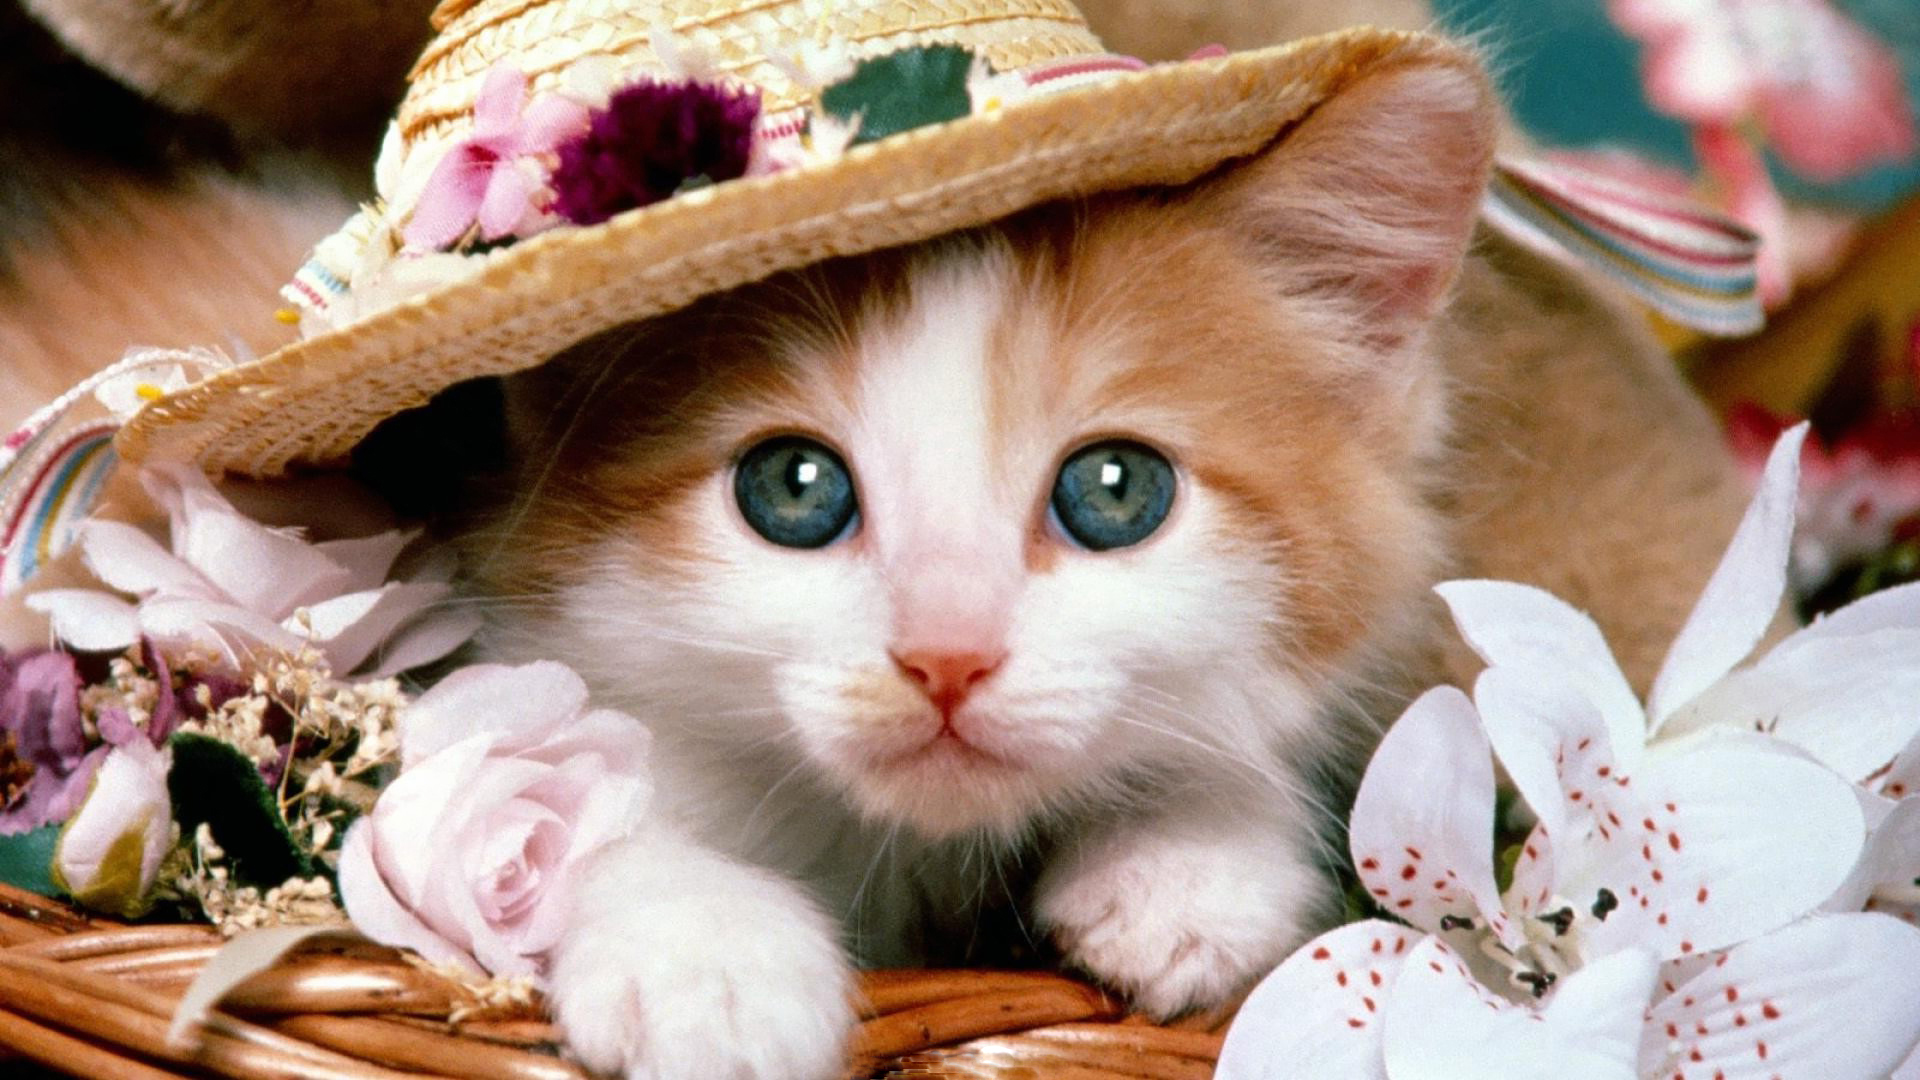 Cat Pictures - All Time Favorite Images of Cats | Pets World